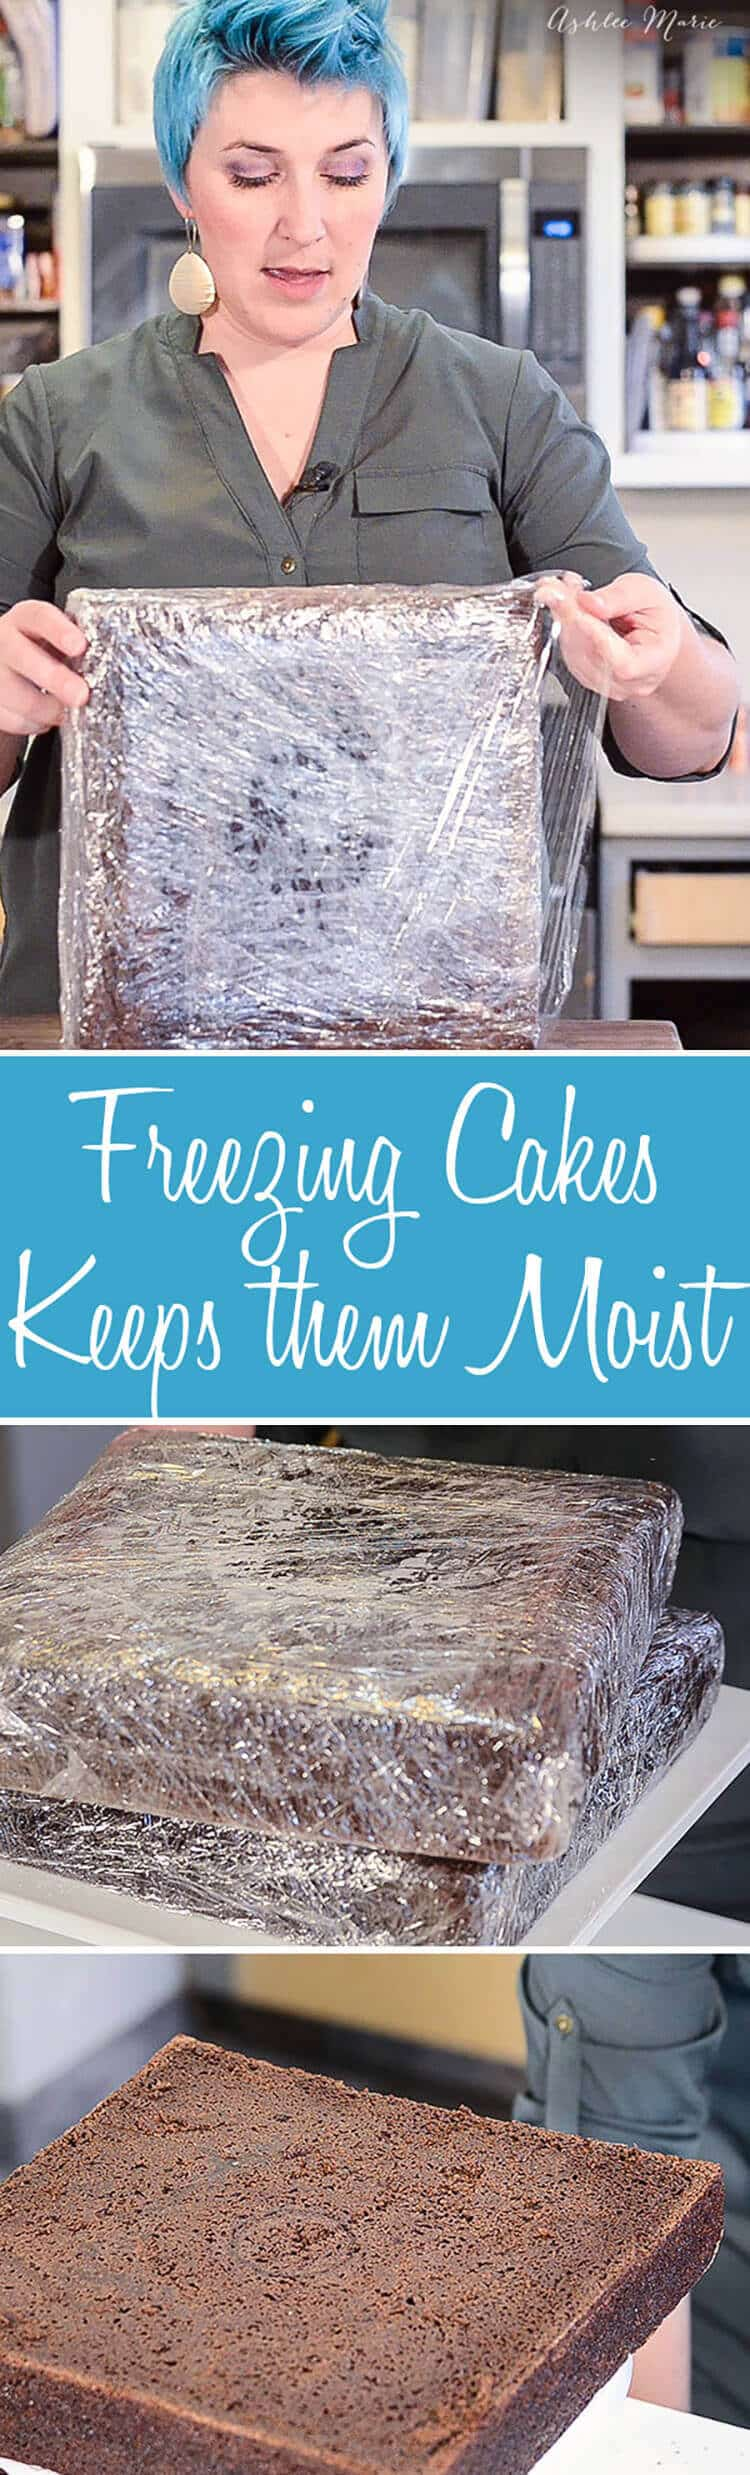 Why freezing cakes keeps them moist and easier to work with.